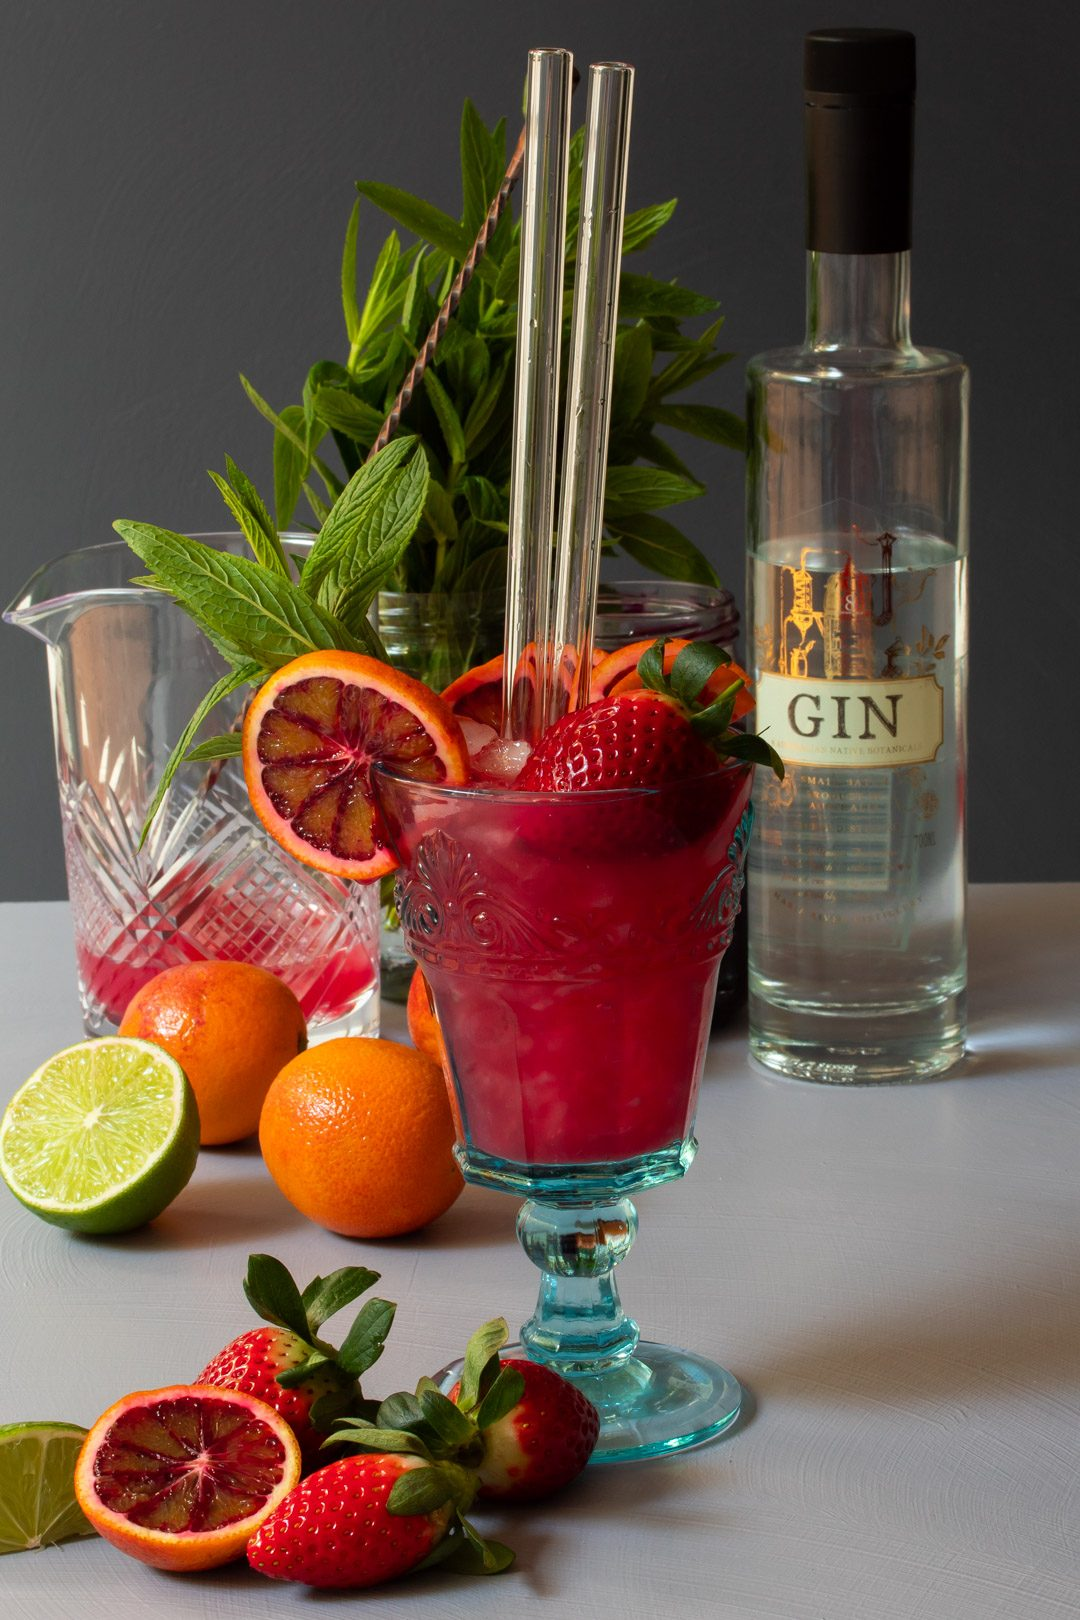 blood orange pomegranate gin daisy cocktail with mixing glass, fresh fruit, gin bottle, mint from 45 degrees